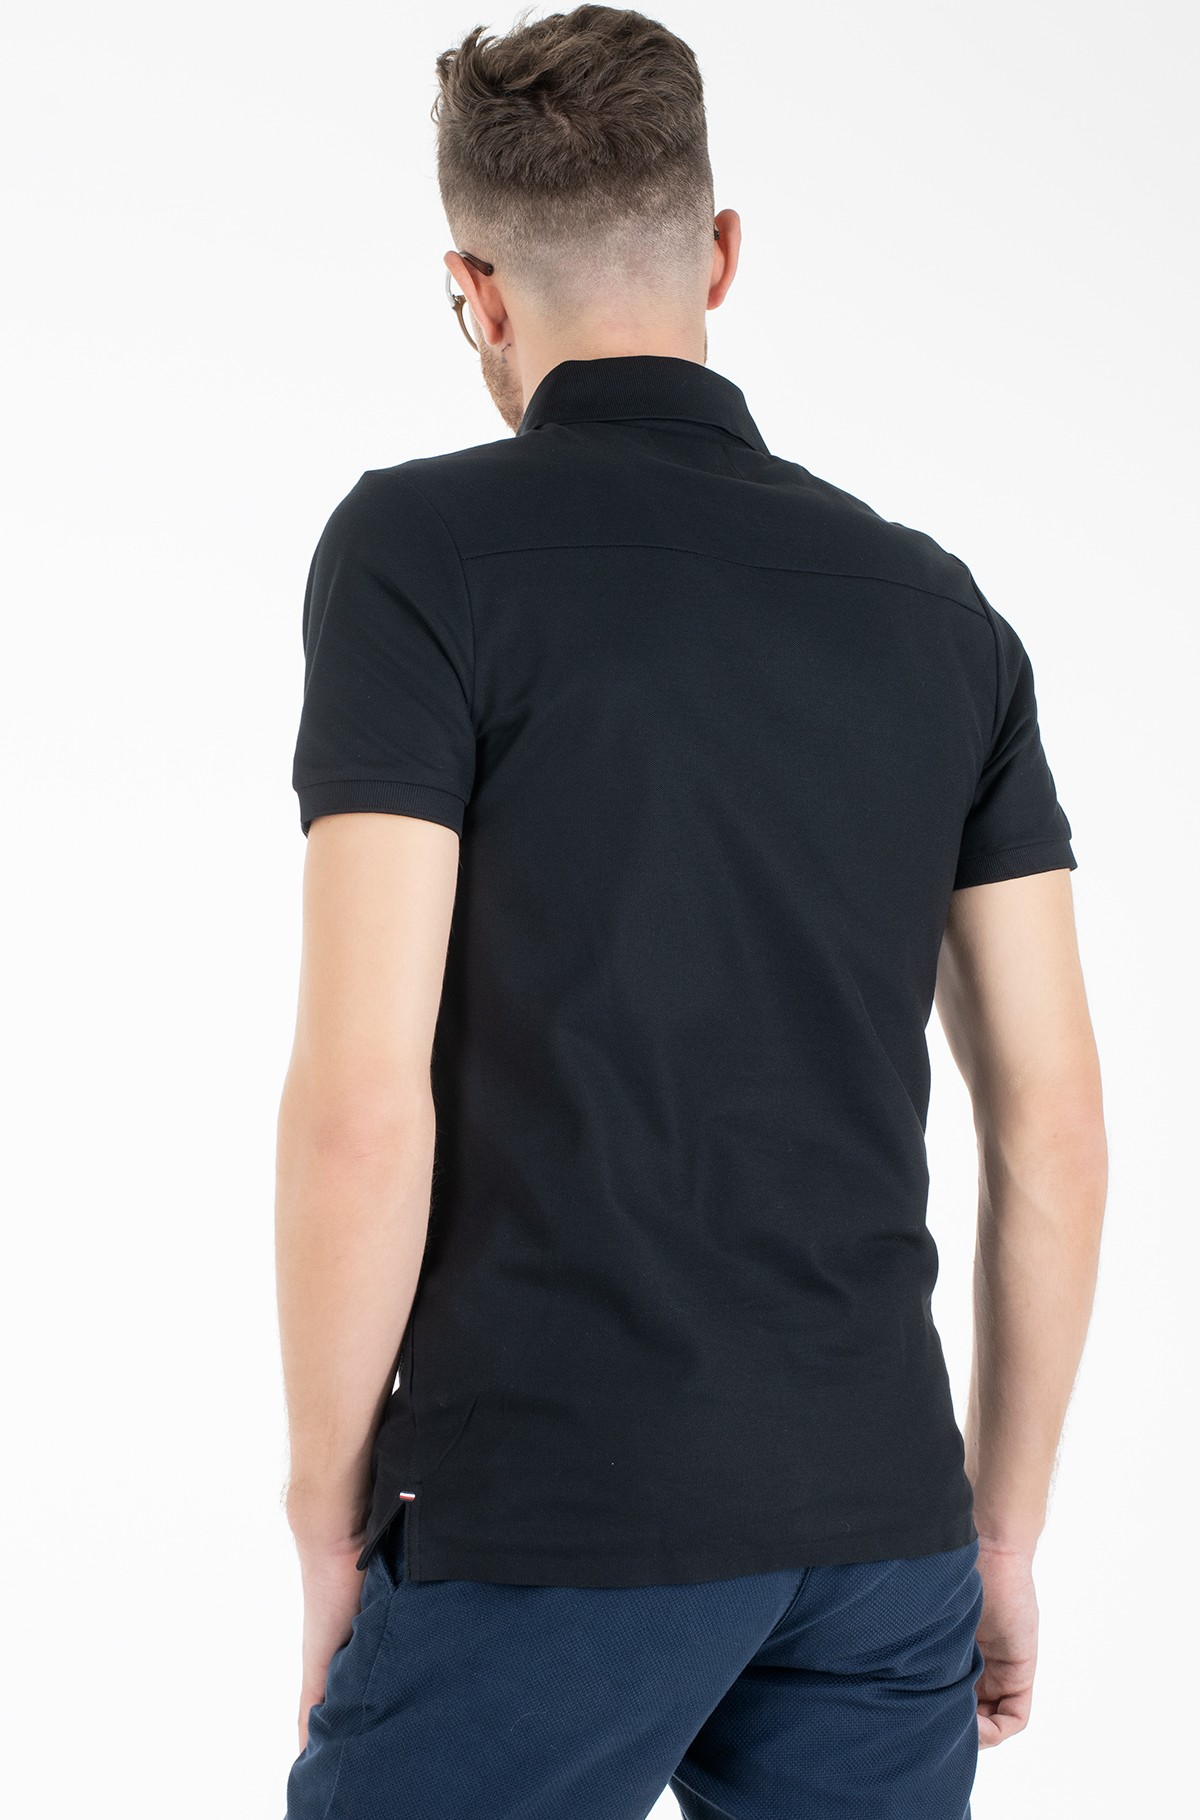 Polokrekls  1 MB TECH LOGO SLIM POLO-full-2